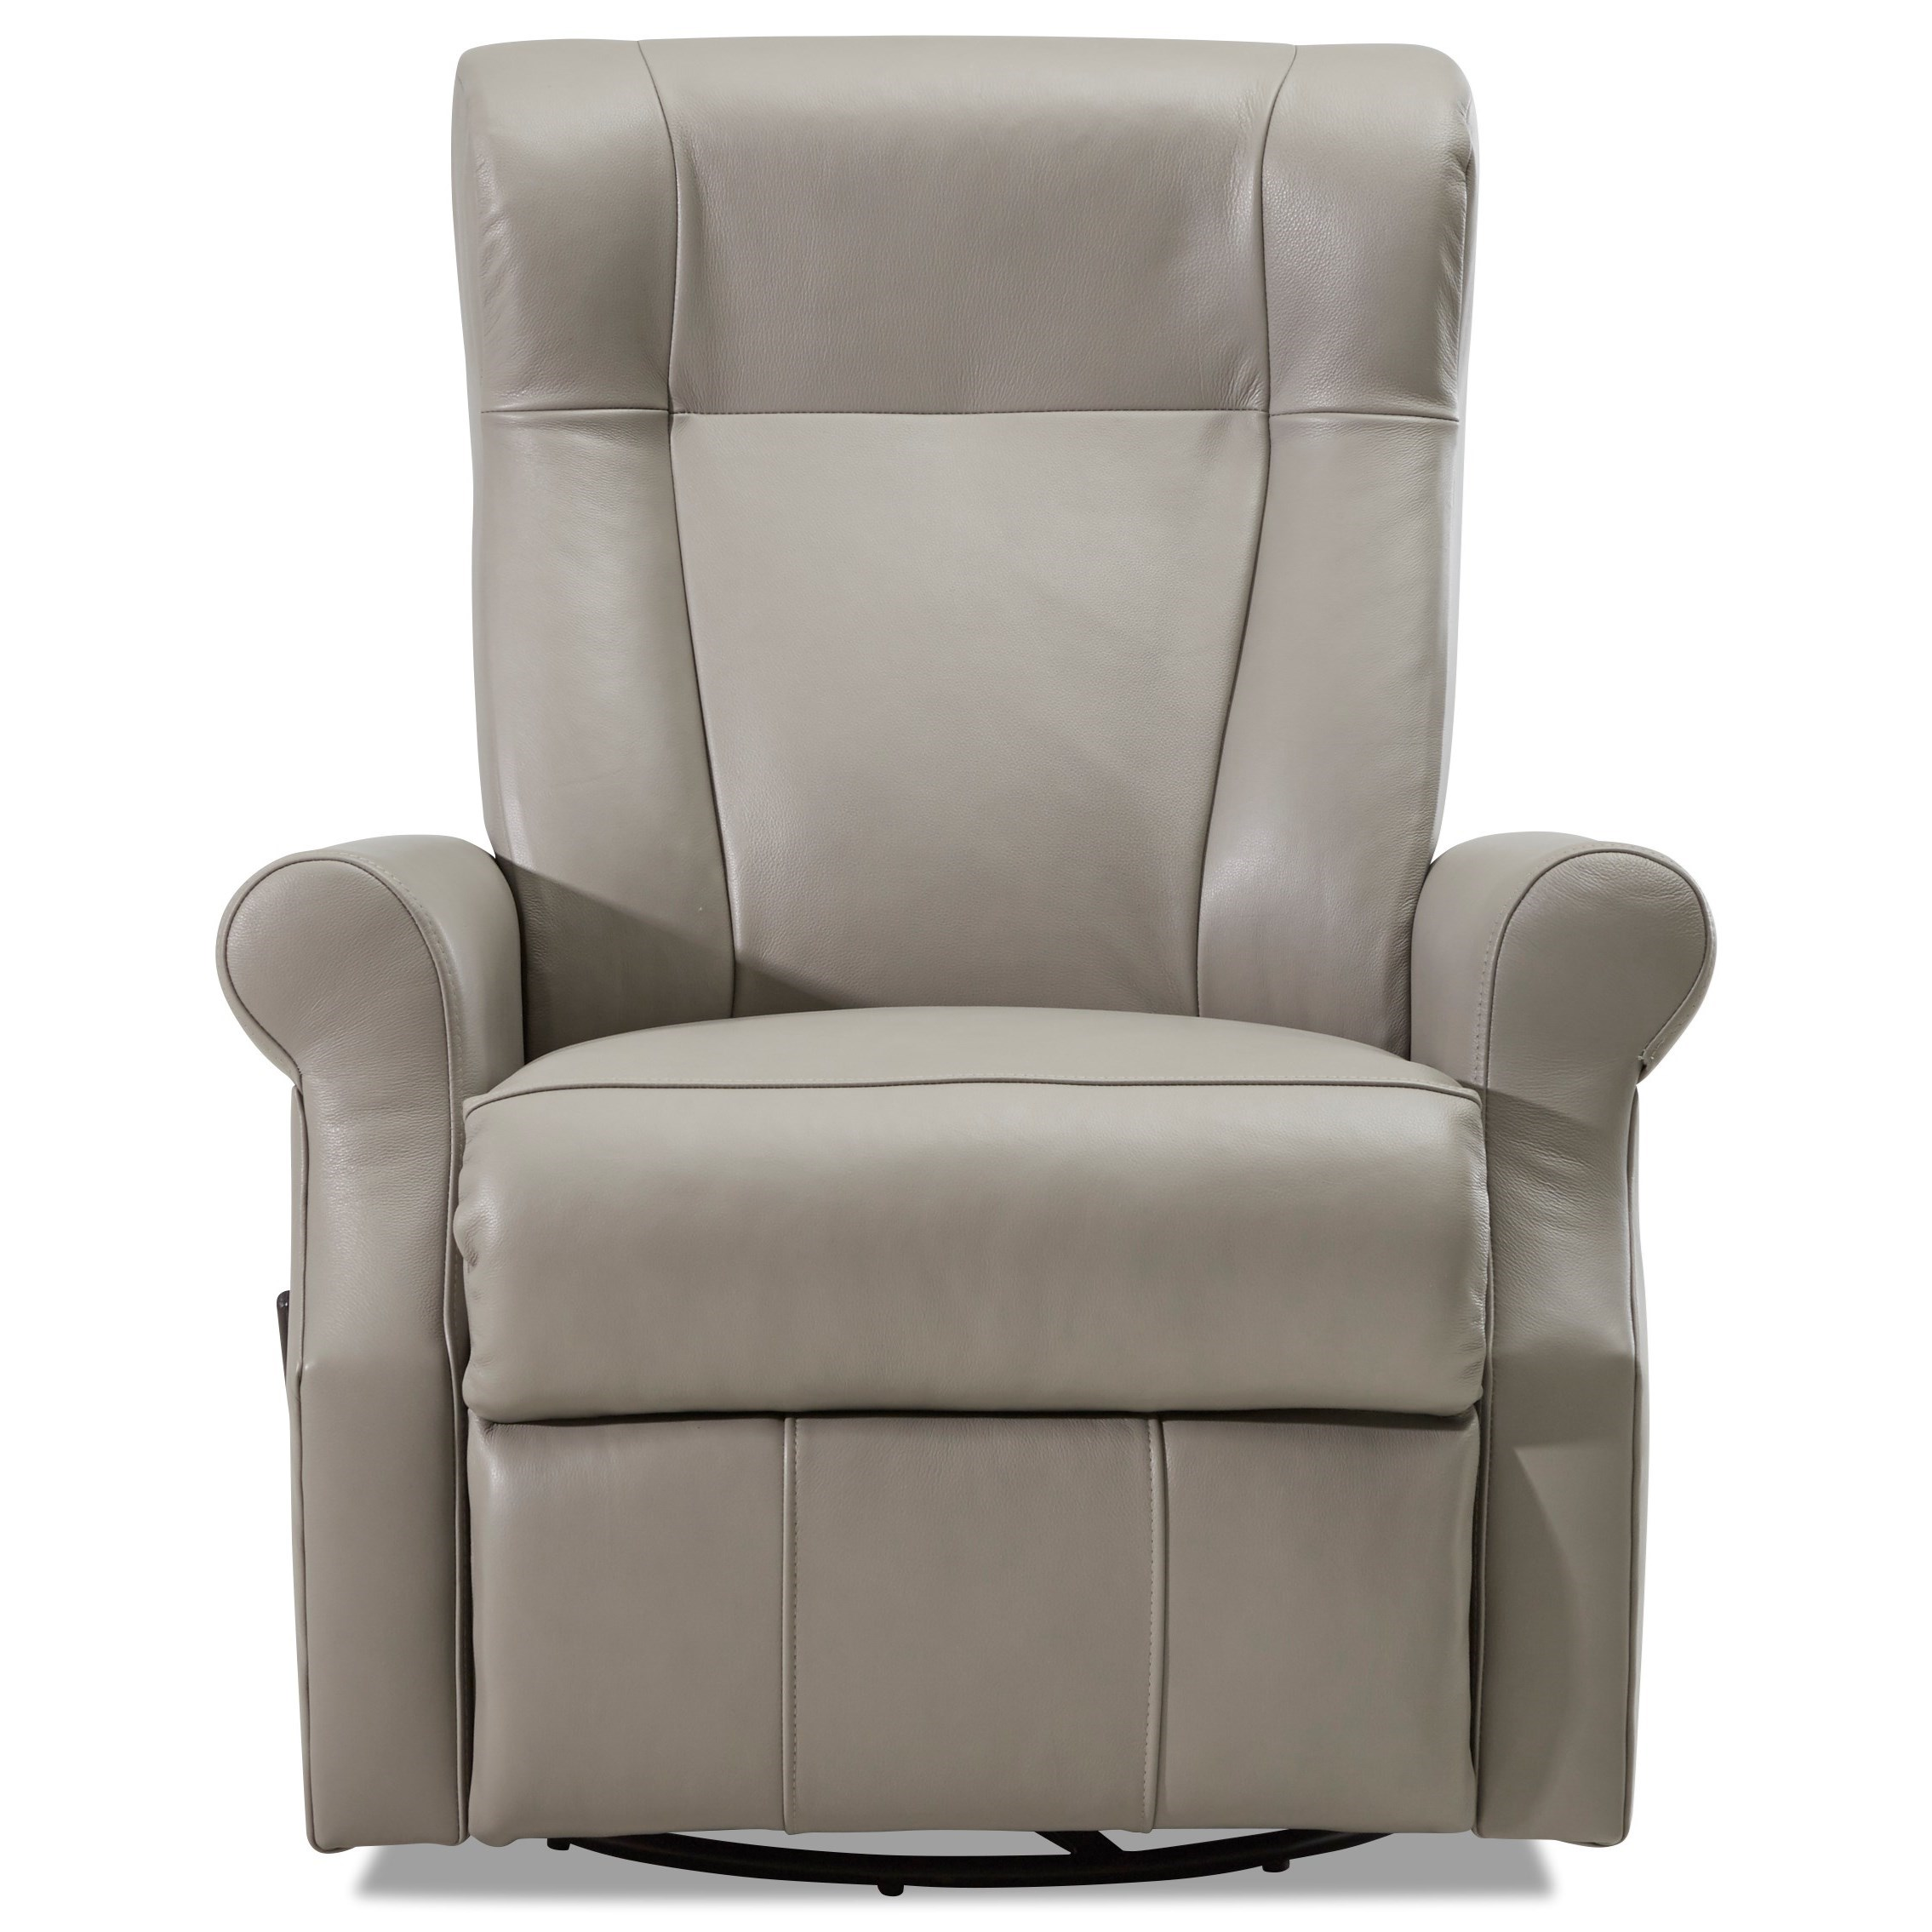 Saturn Power Rocking Recliner  by Klaussner at Northeast Factory Direct